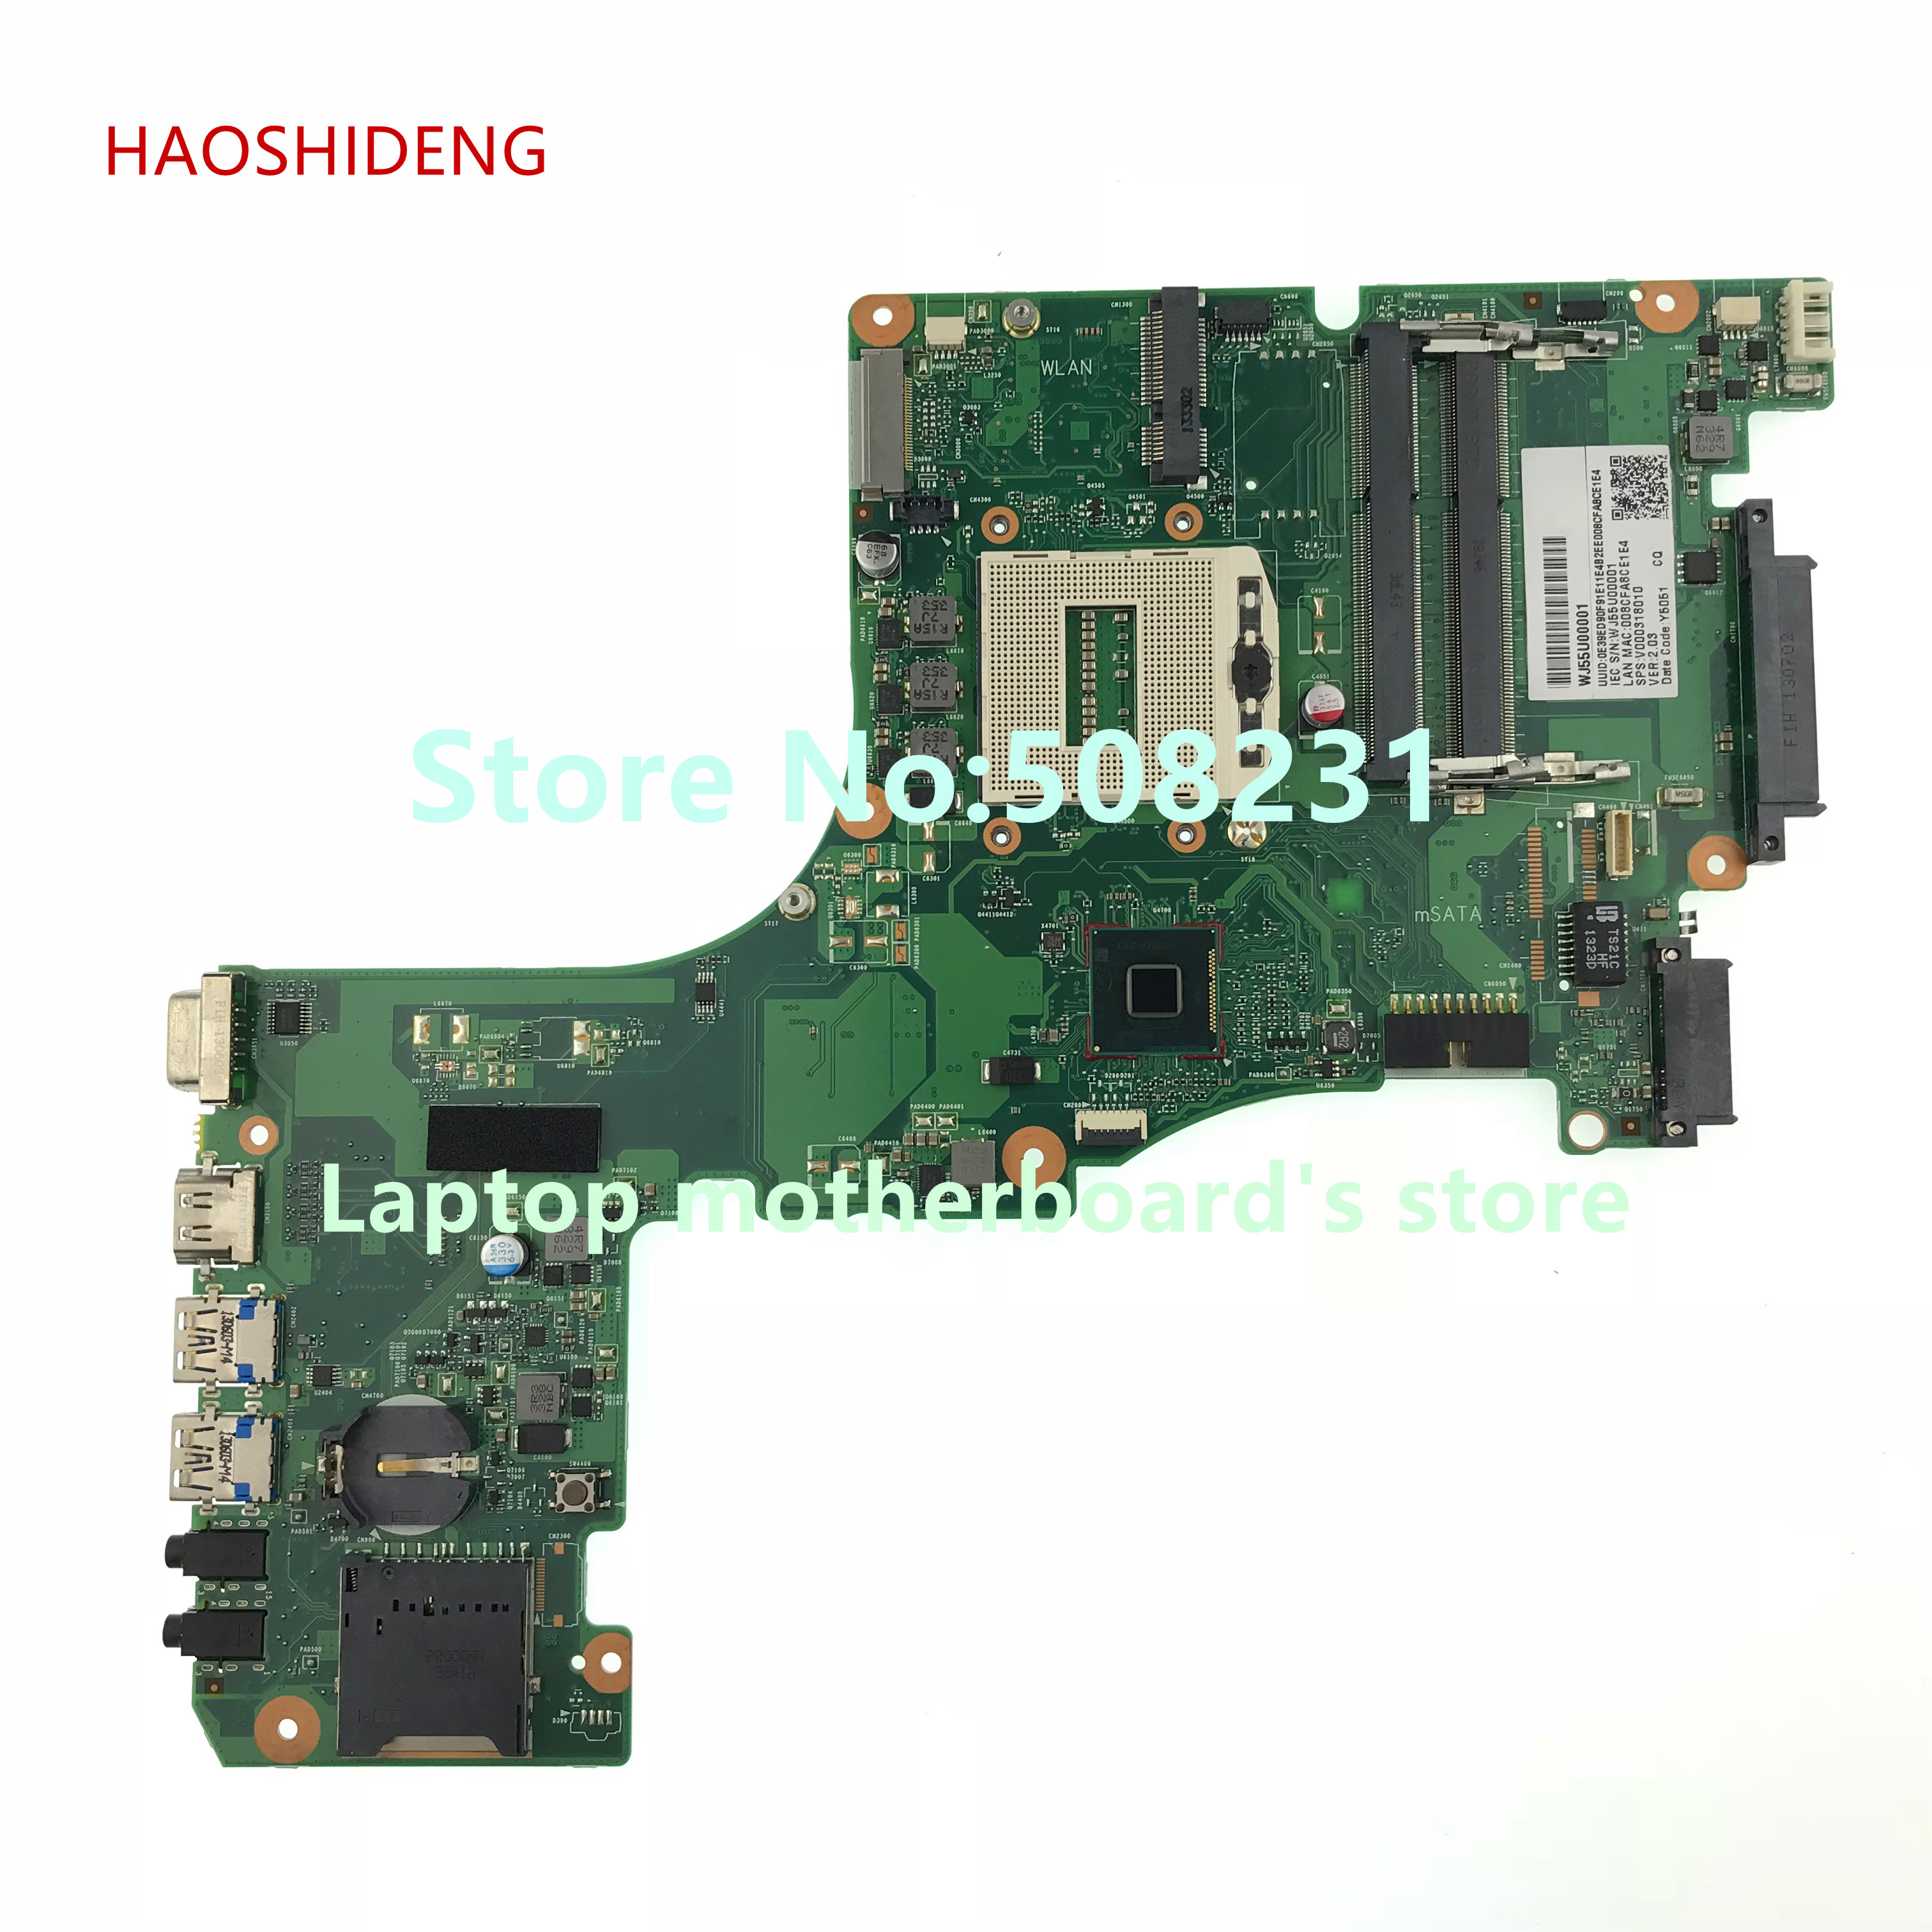 HAOSHIDENG V000318010 CR10S-6050A2555901-MB-A02 Mainboard for Toshiba Satellite L50-A L55-A Laptop Motherboard socket PGA 947 free shipping v000318010 for toshiba satellite l50 a l55 a l50t a l55t a laptop motherboard all functions 100% fully tested